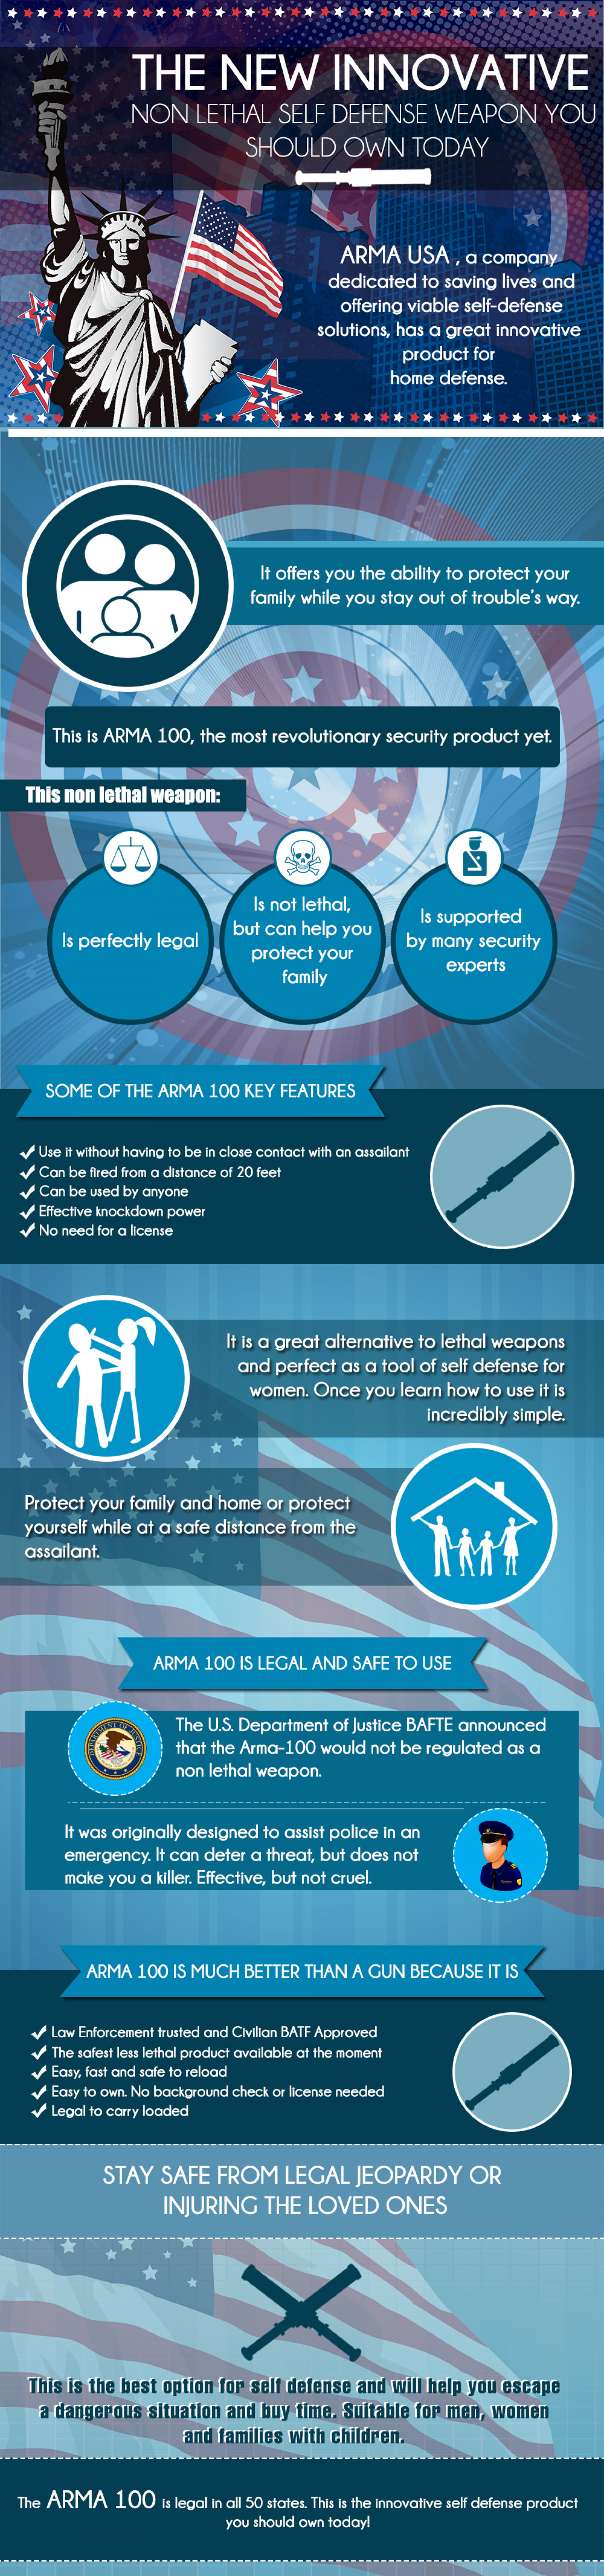 The New Innovative Non Lethal Self Defense Weapon You Should Own Today Infographic